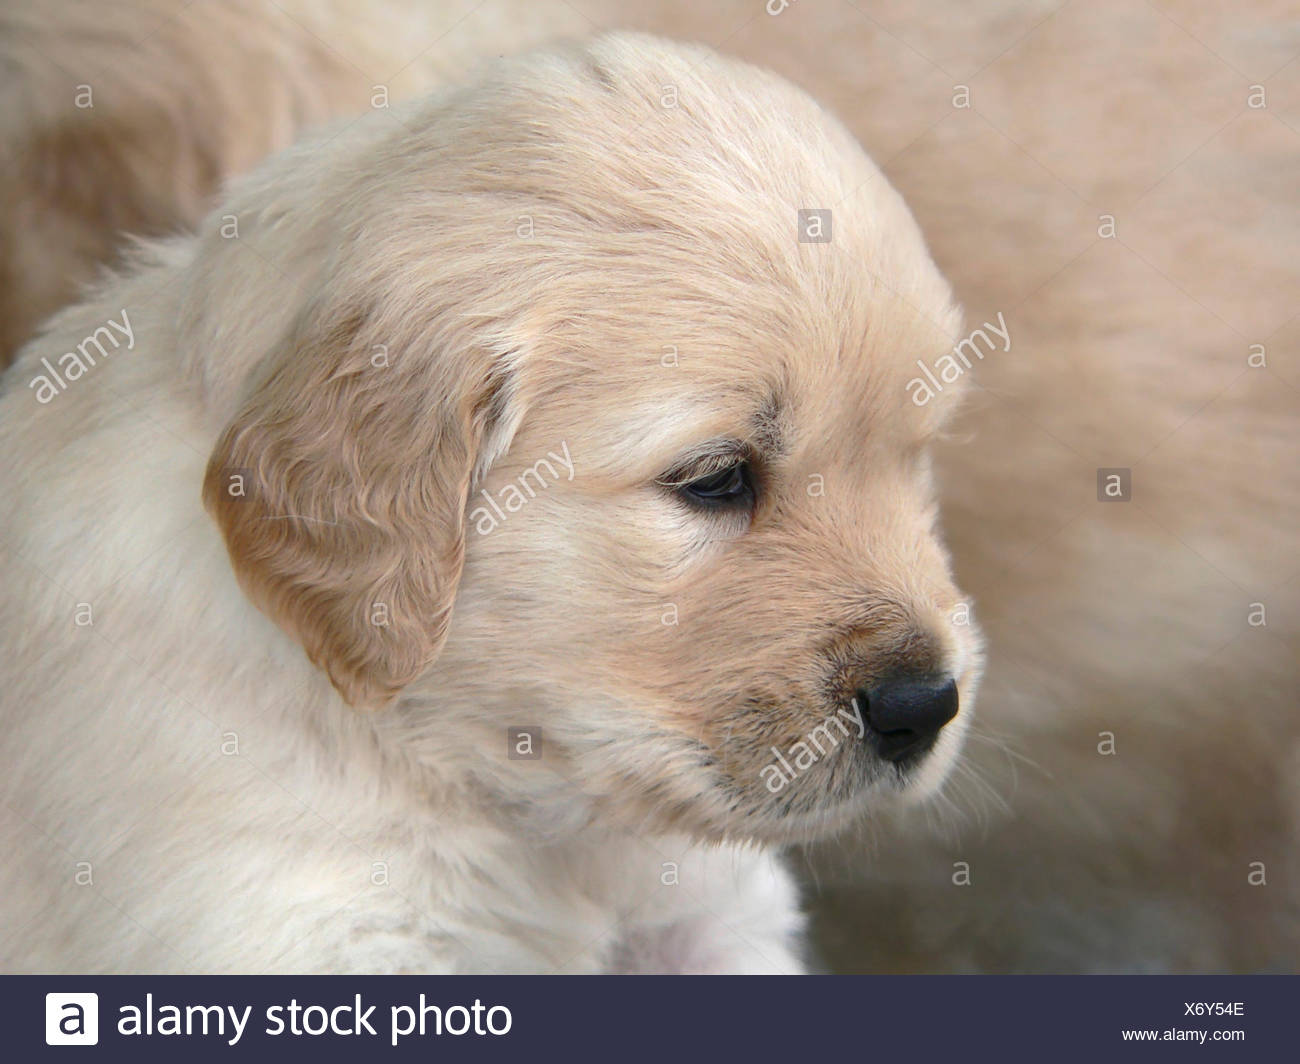 A 4 Weeks Old Golden Retriever Puppy Portrait In Light Brown Back Of Animal Fur Stock Photo Alamy